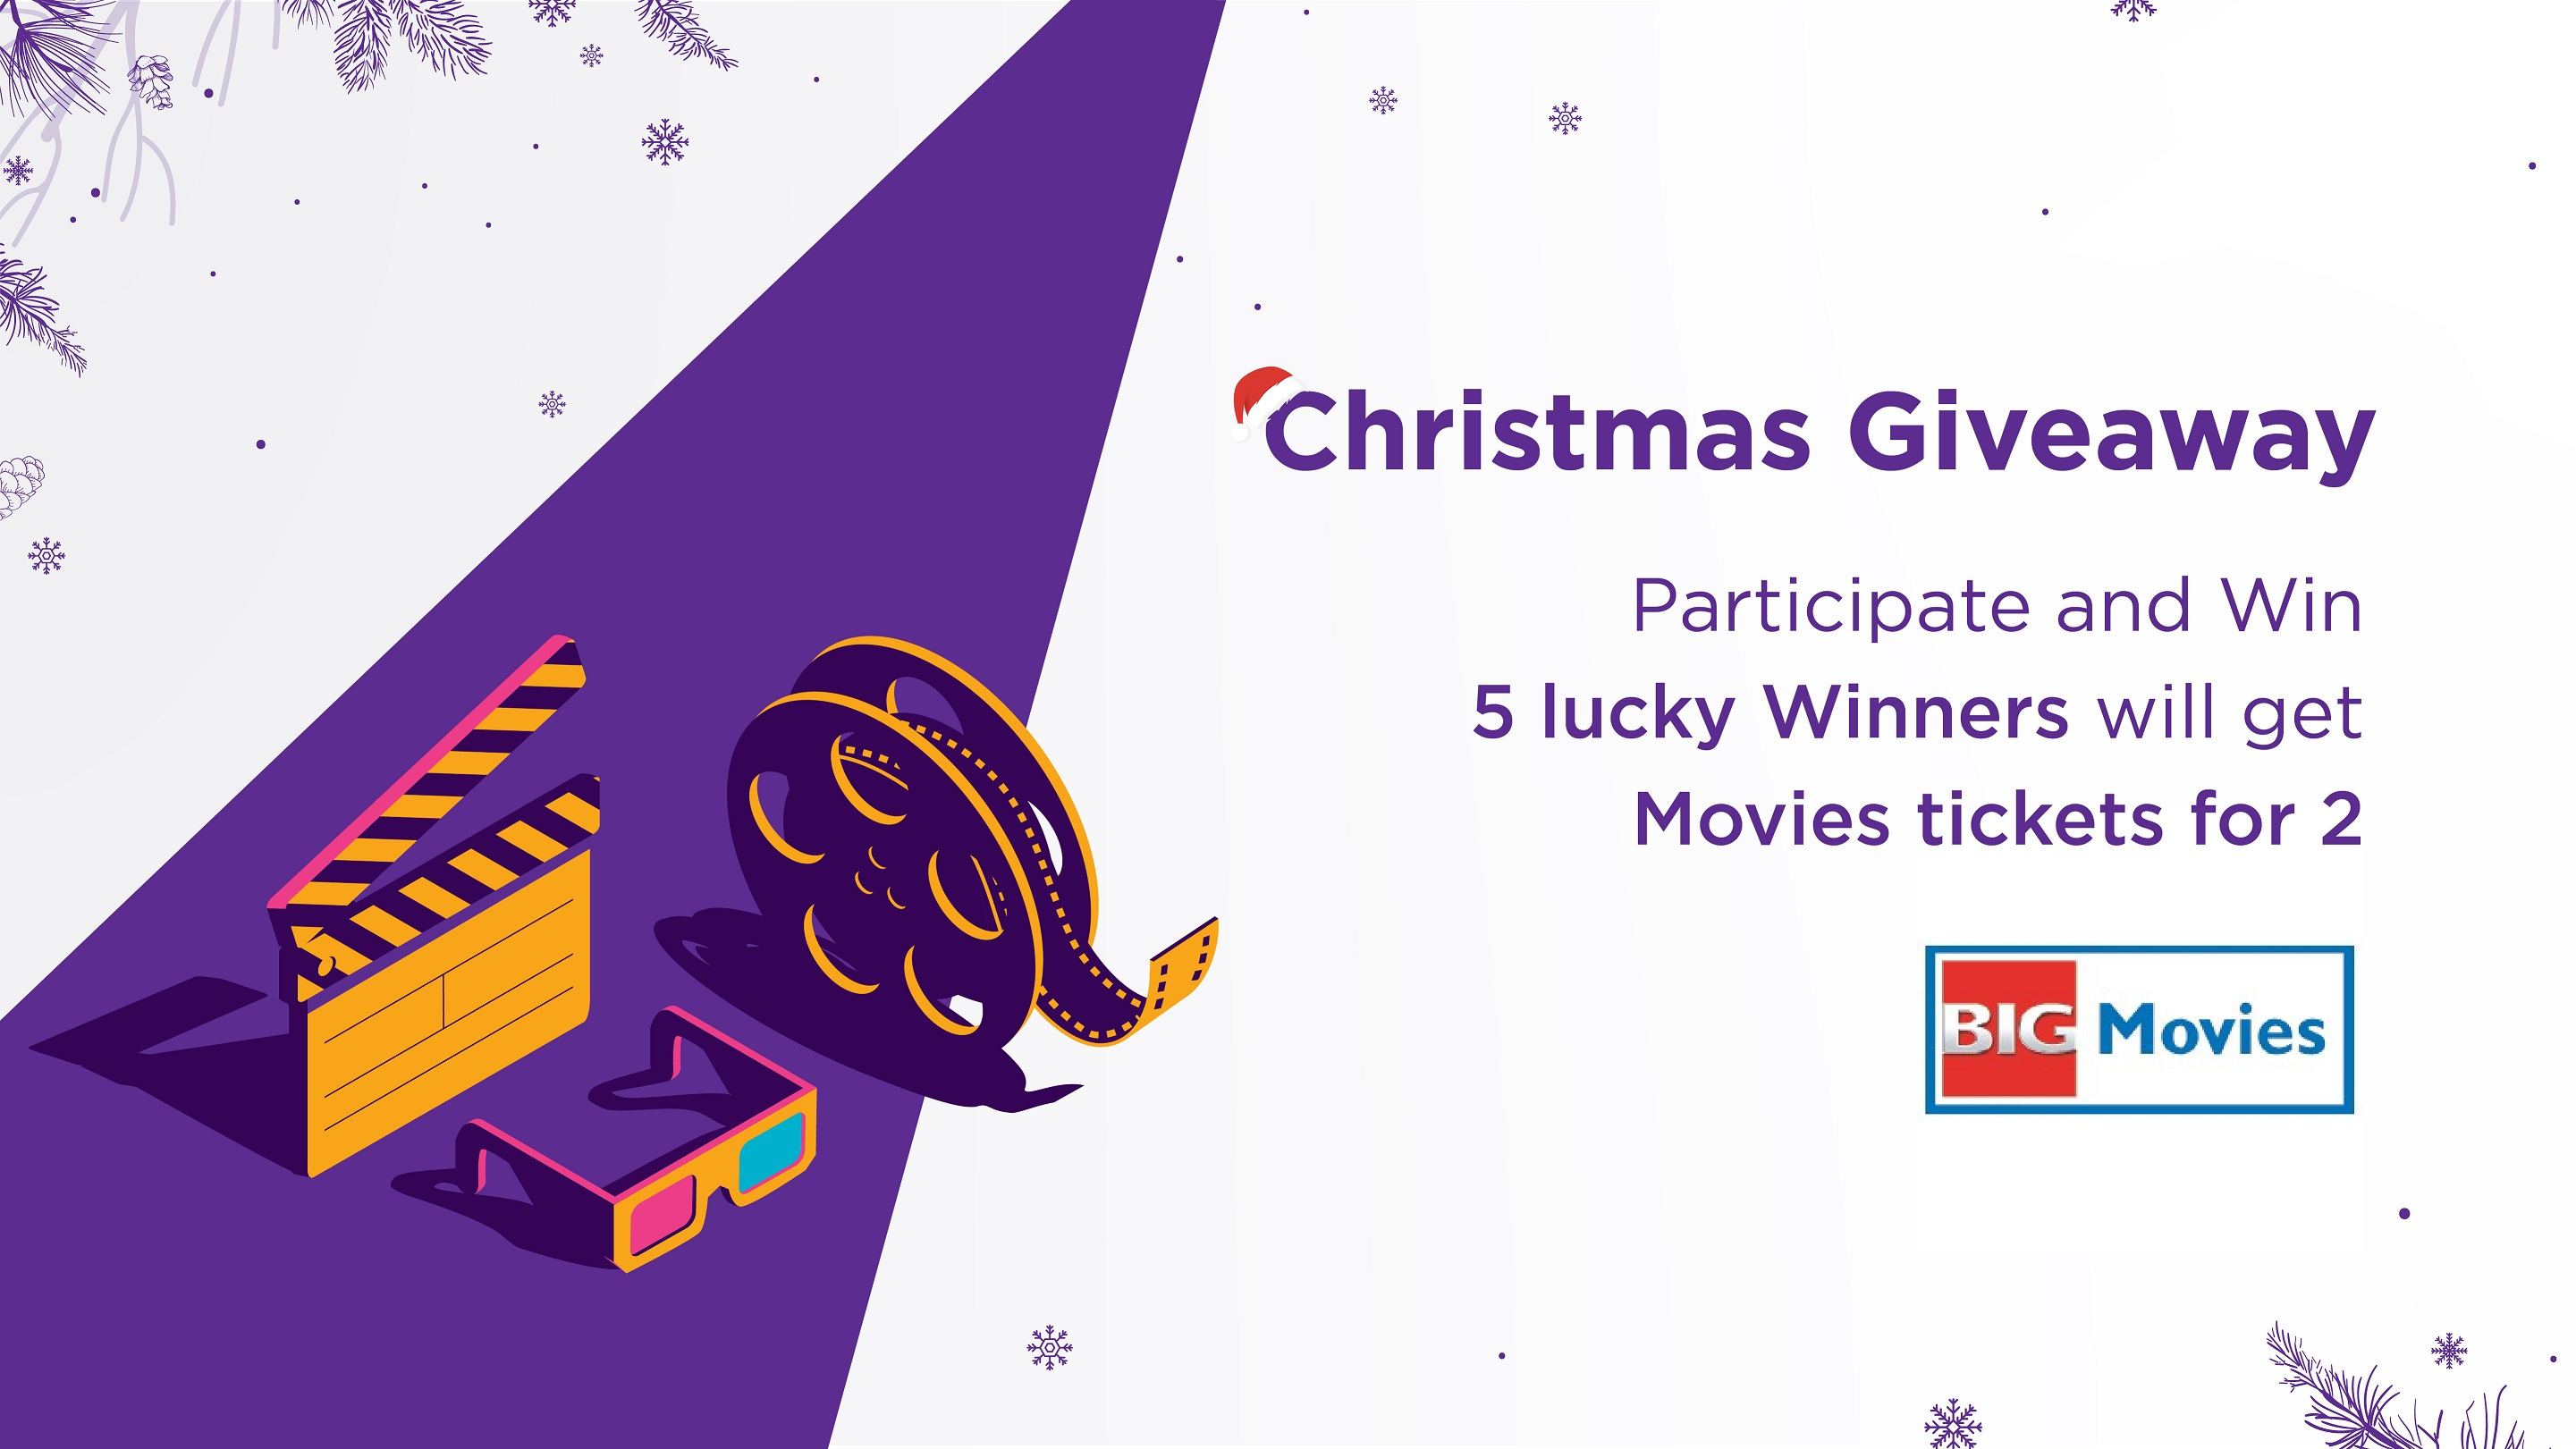 Khalti Brings Big Movies Tickets Offer To You This Christmas Season